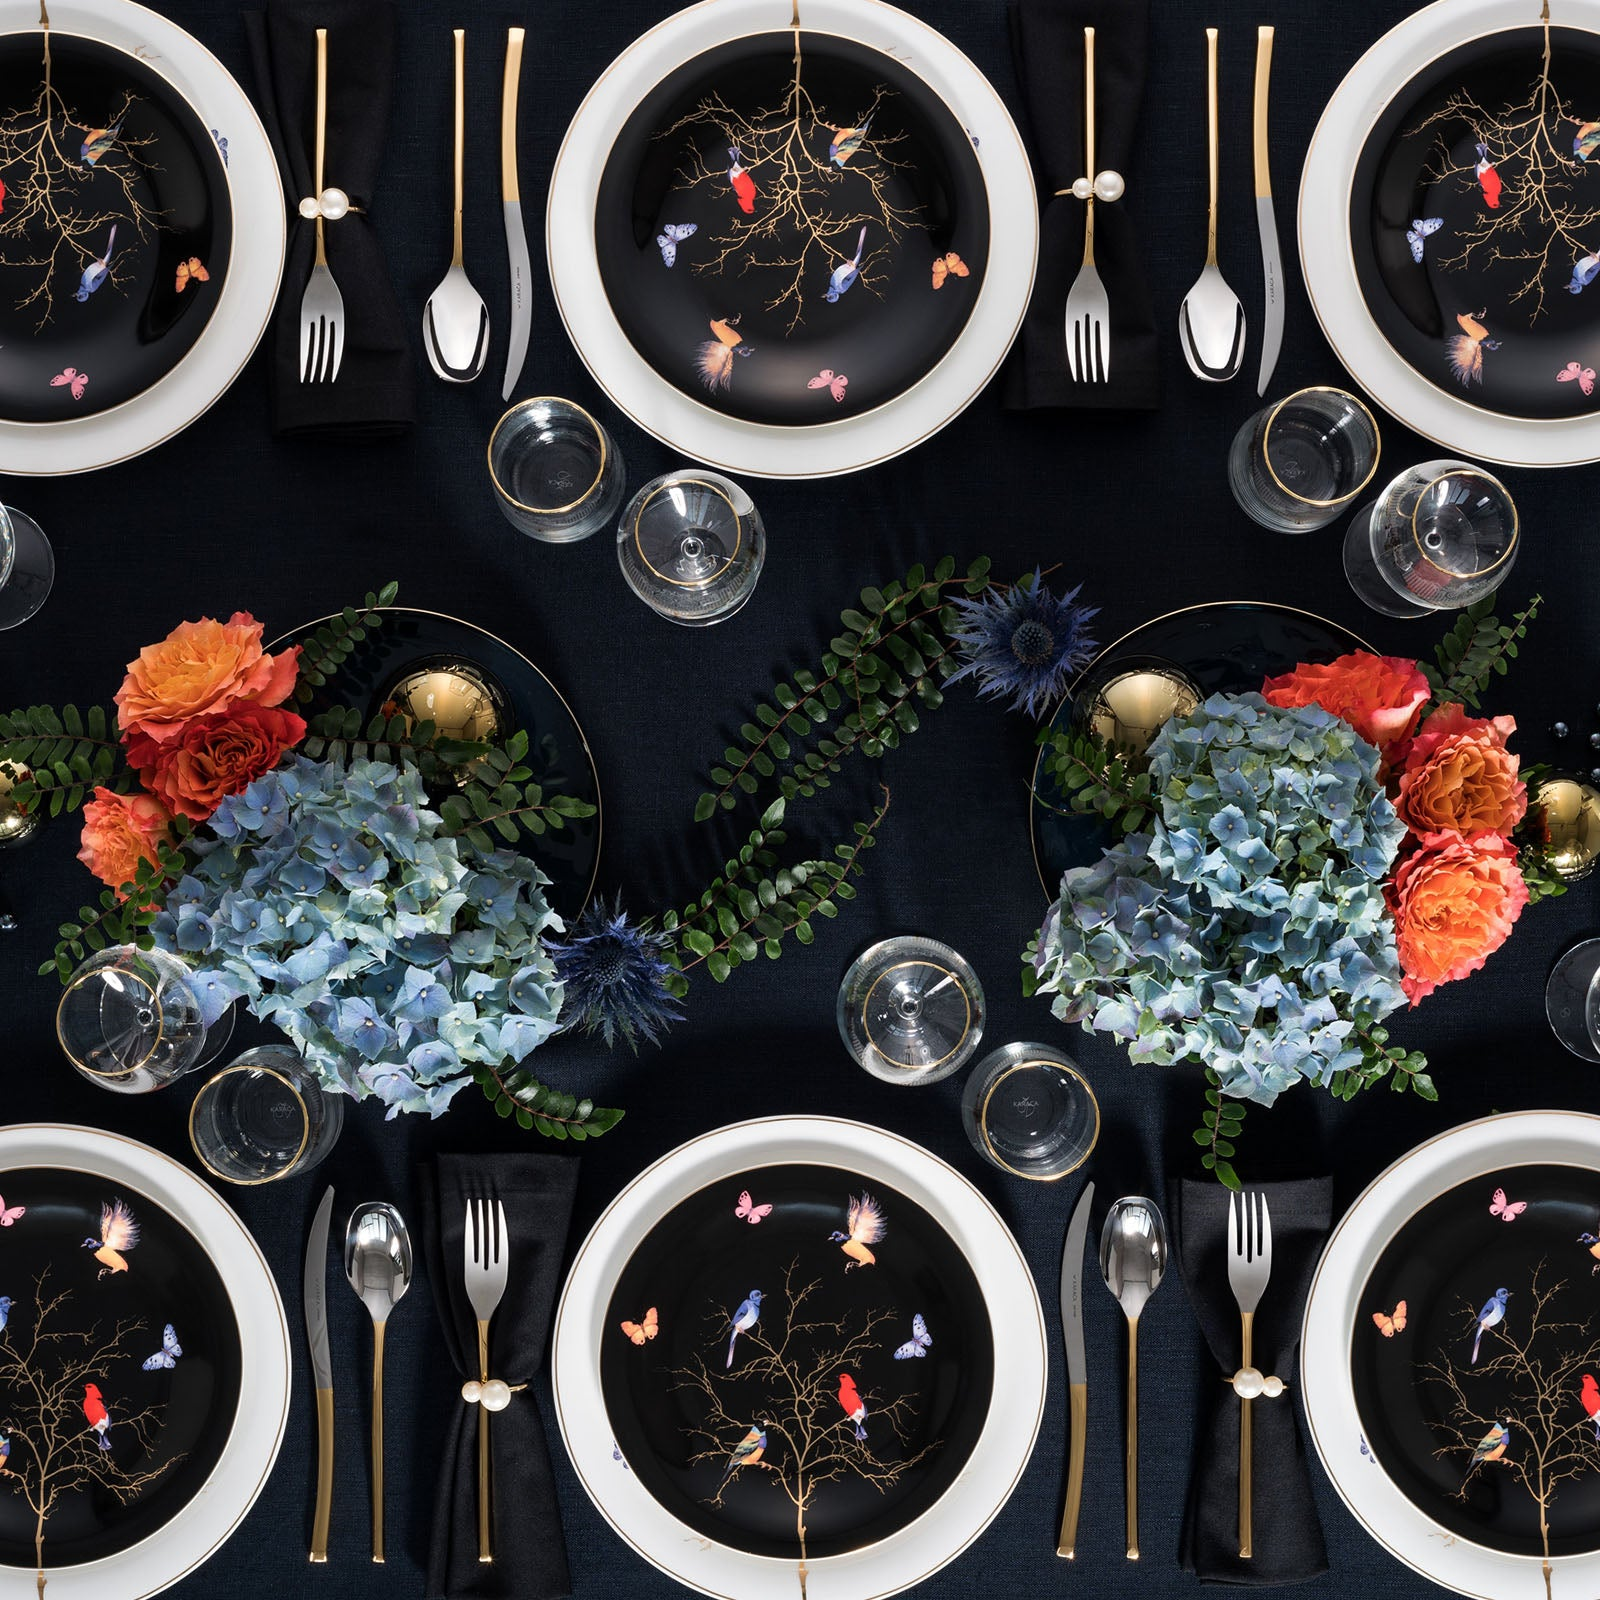 Fine Pearl Grace Black 86 Pieces İnci Dinner Set porcelain 153.03.07.4555 -  طقم عشاء فاخر من بيرل غريس أسود 86 قطعة بورسلين - Shop Online Furniture and Home Decor Store in Dubai, UAE at ebarza